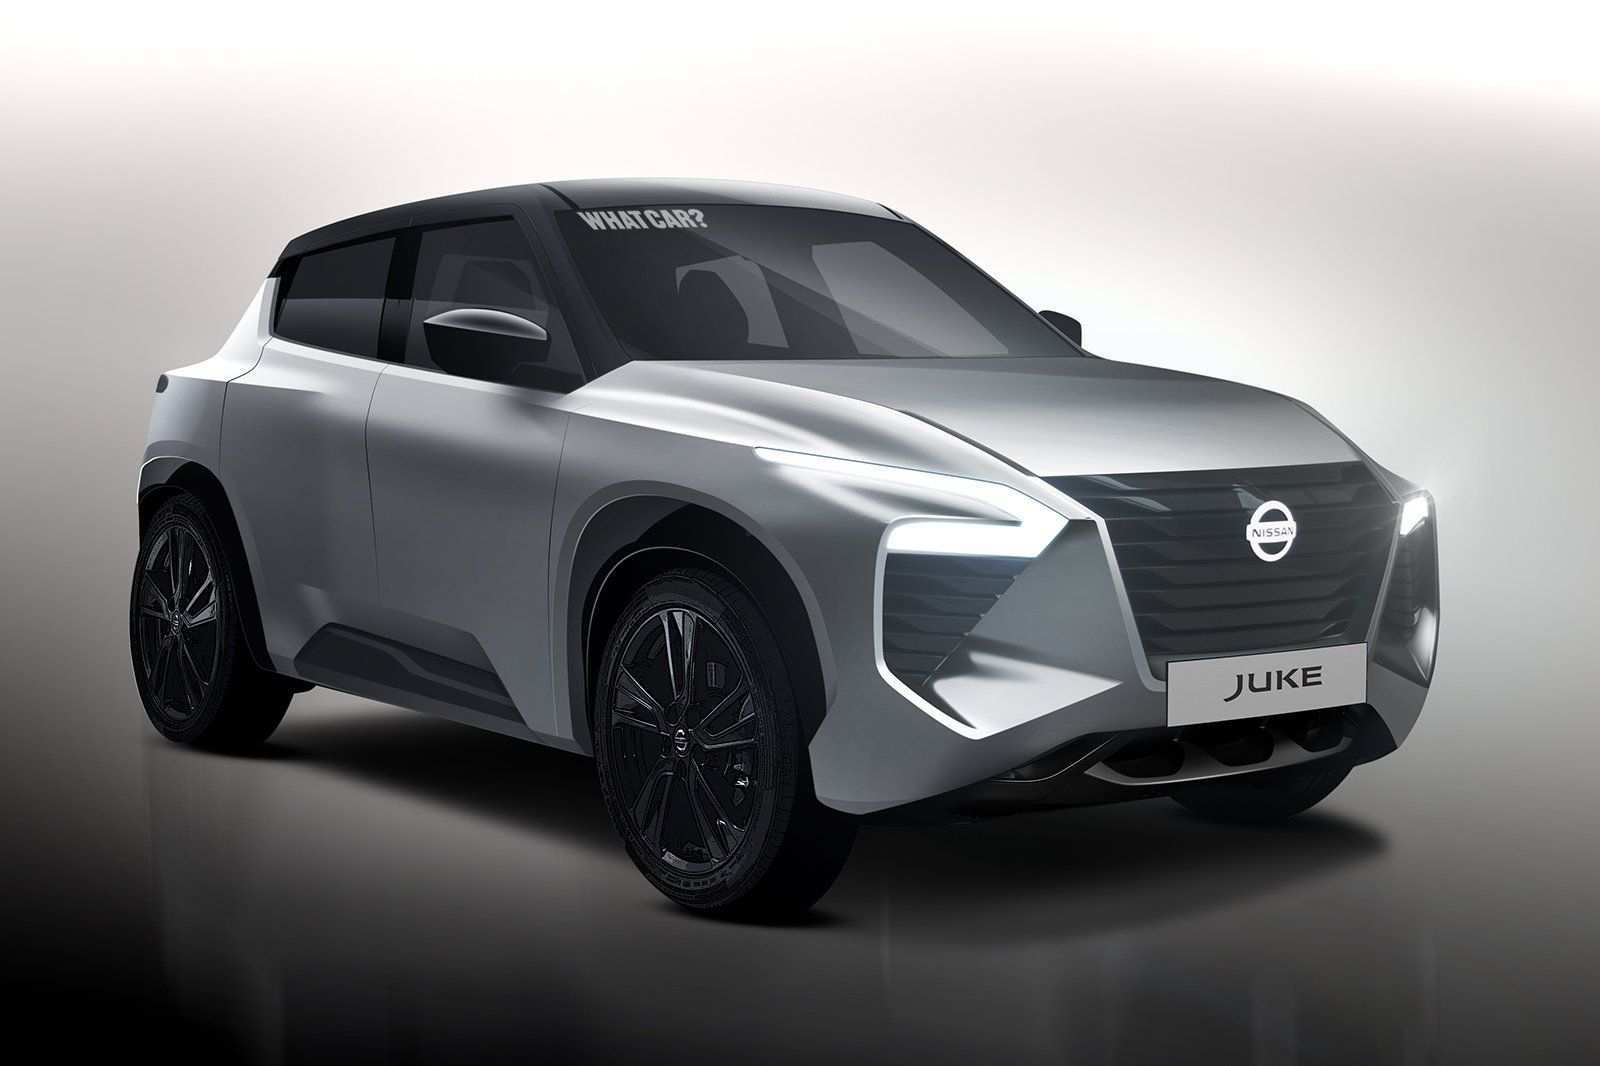 97 All New The Nissan Juke 2019 Review New Release Performance for The Nissan Juke 2019 Review New Release